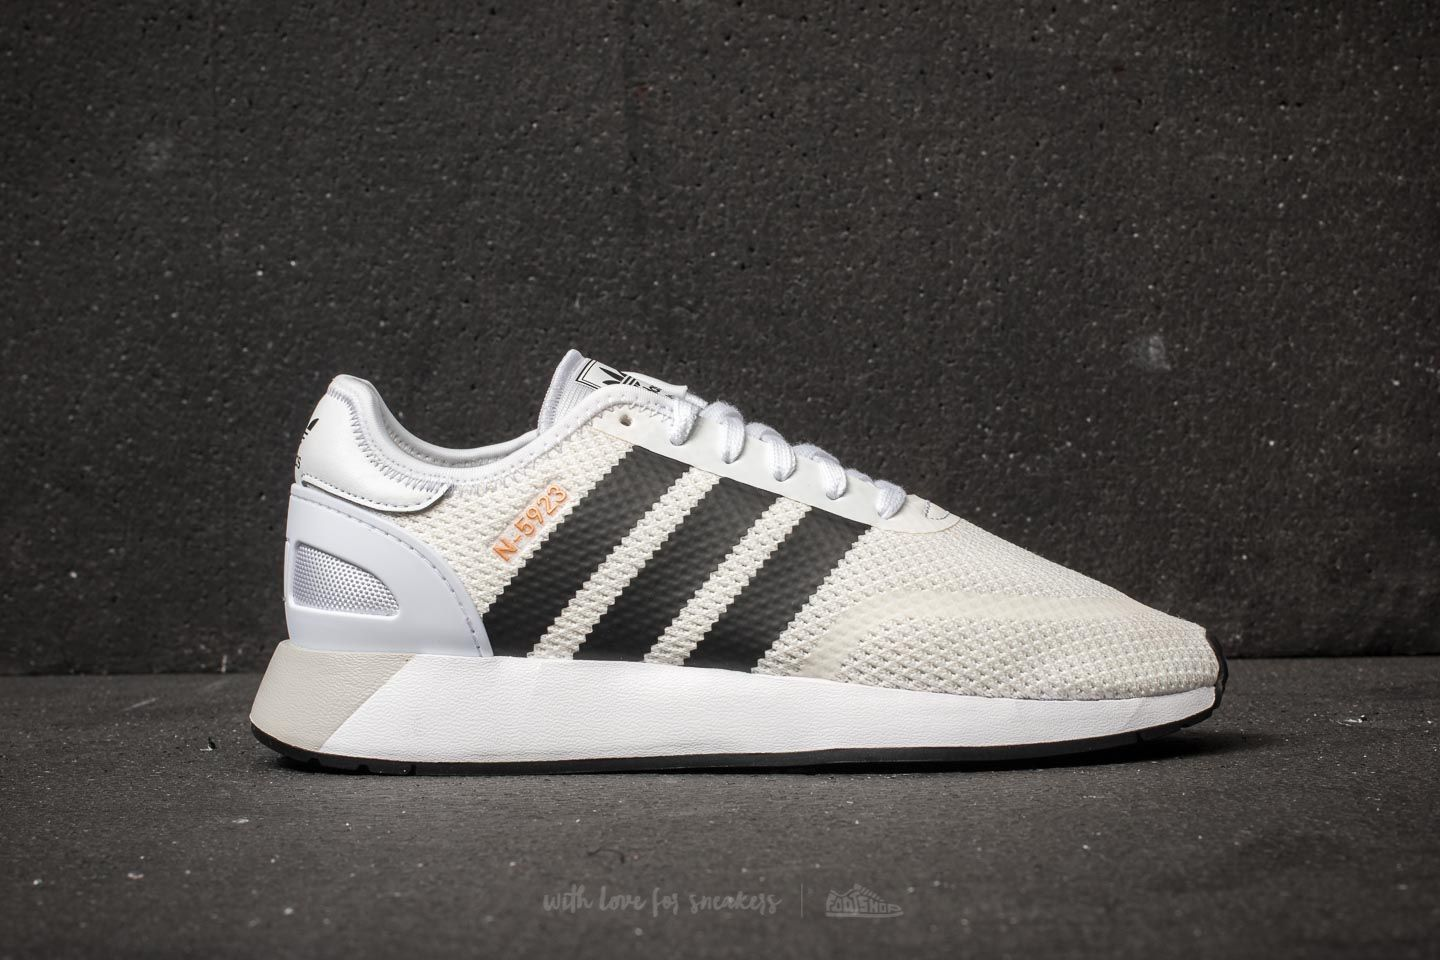 outlet store b9b54 d3901 adidas N-5923 Ftw White  Core Black  Grey One at a great price